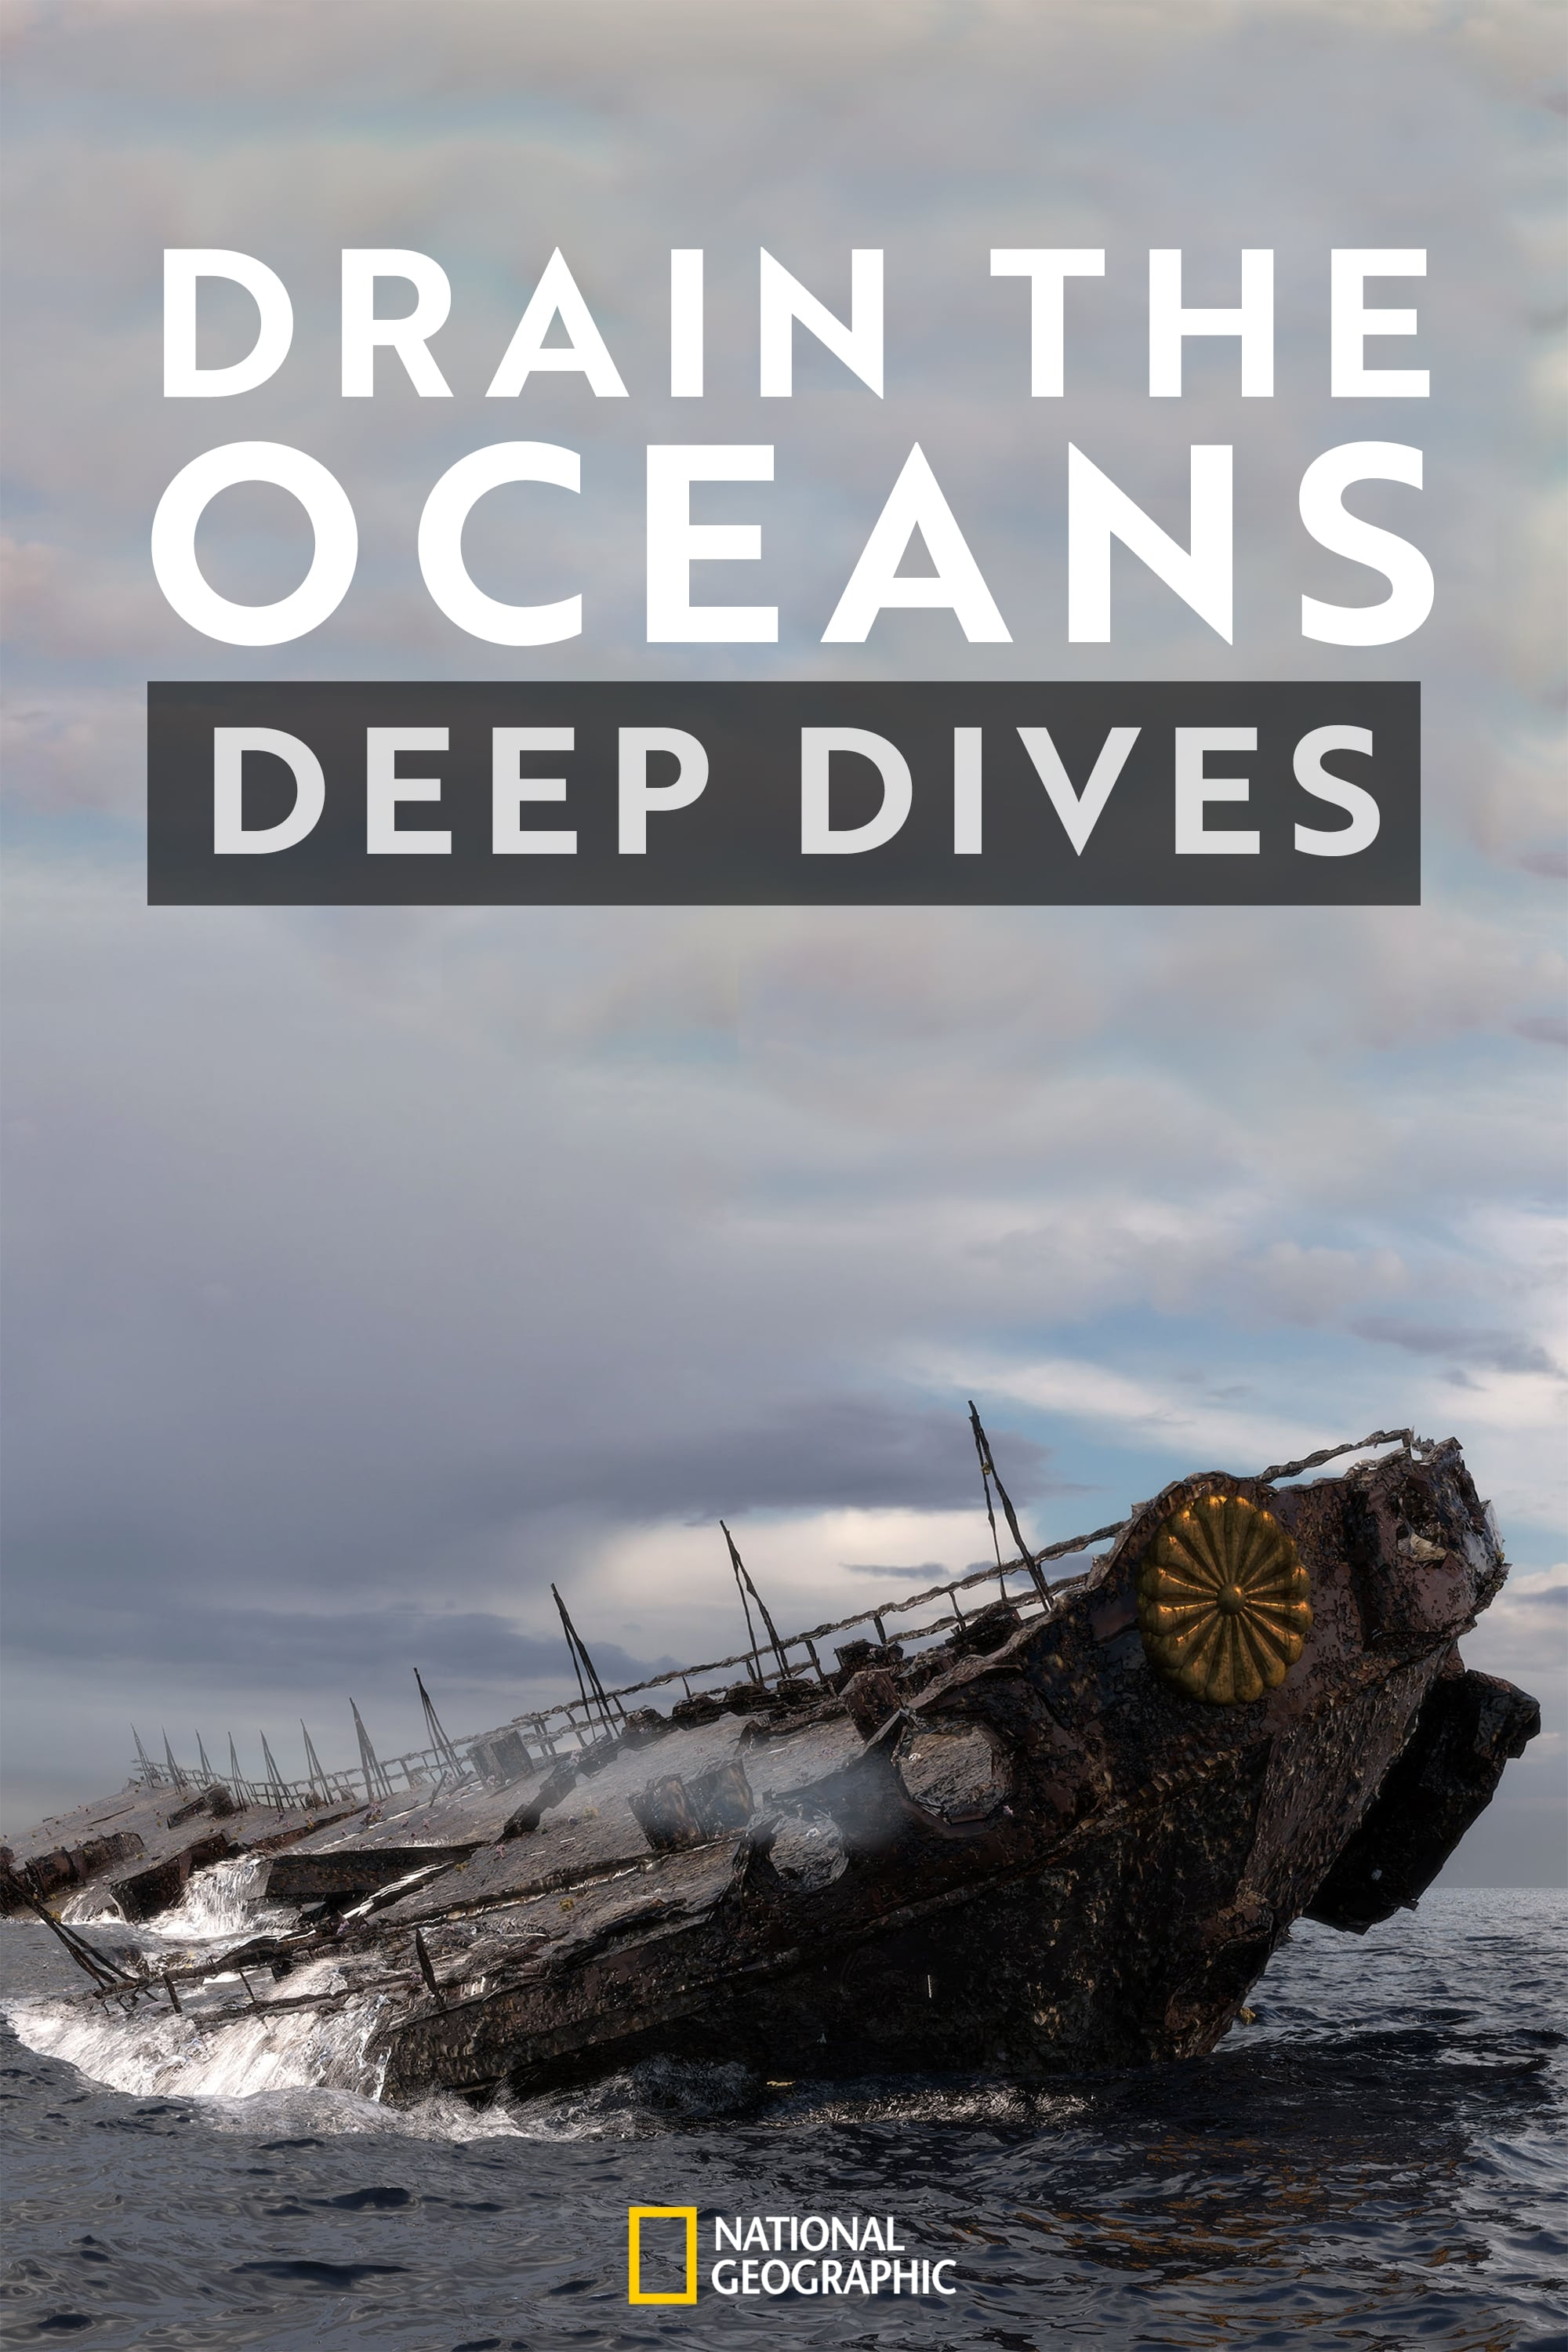 Drain The Oceans: Deep Dive (2019)